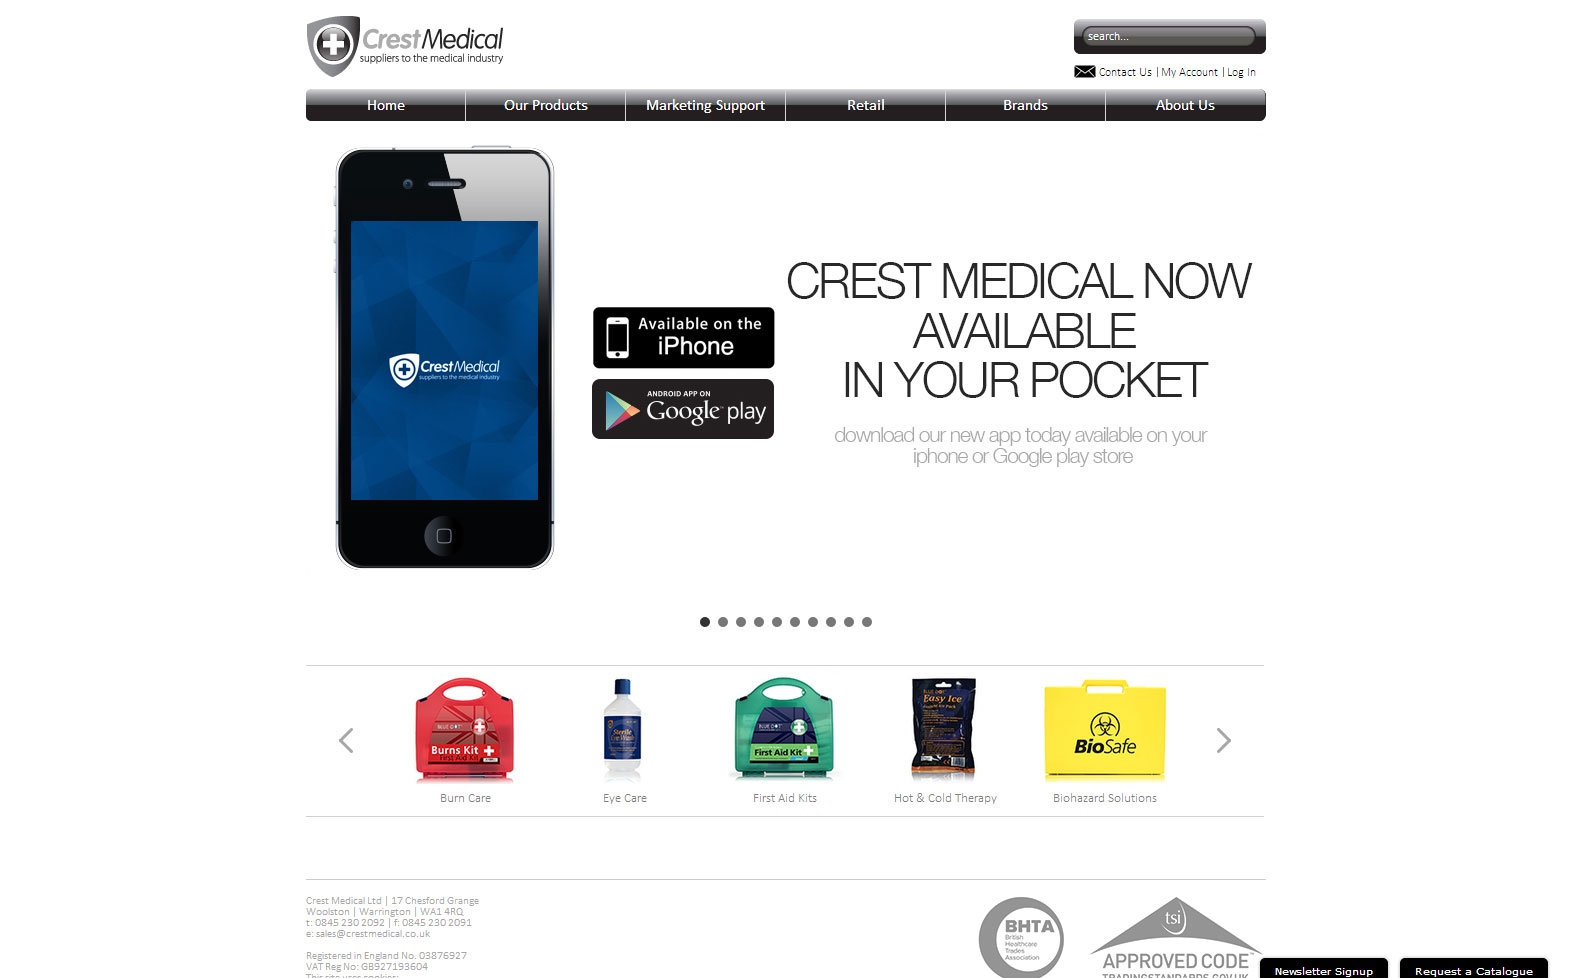 Crest Medical Website